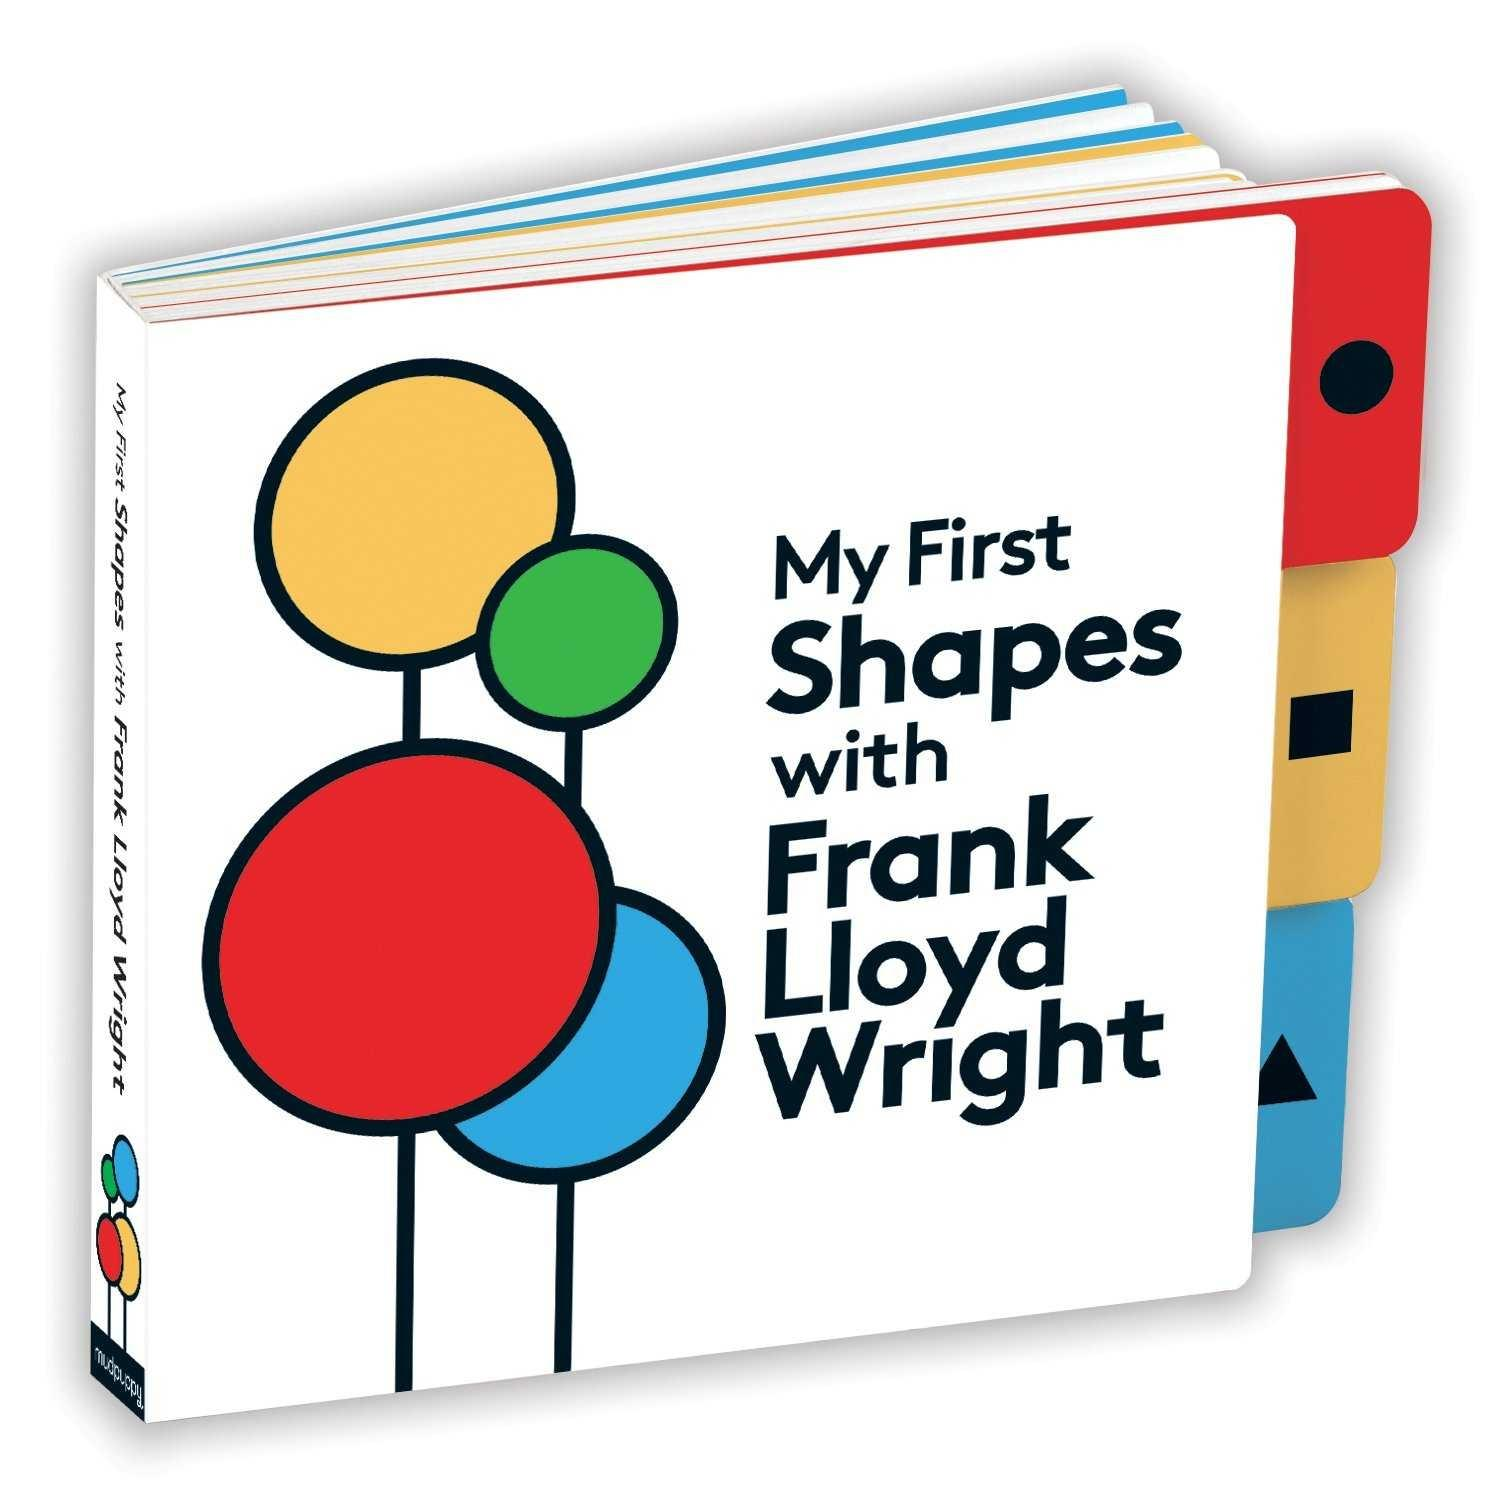 FIRST SHAPES WITH FRANK LLOYD WRIGHT